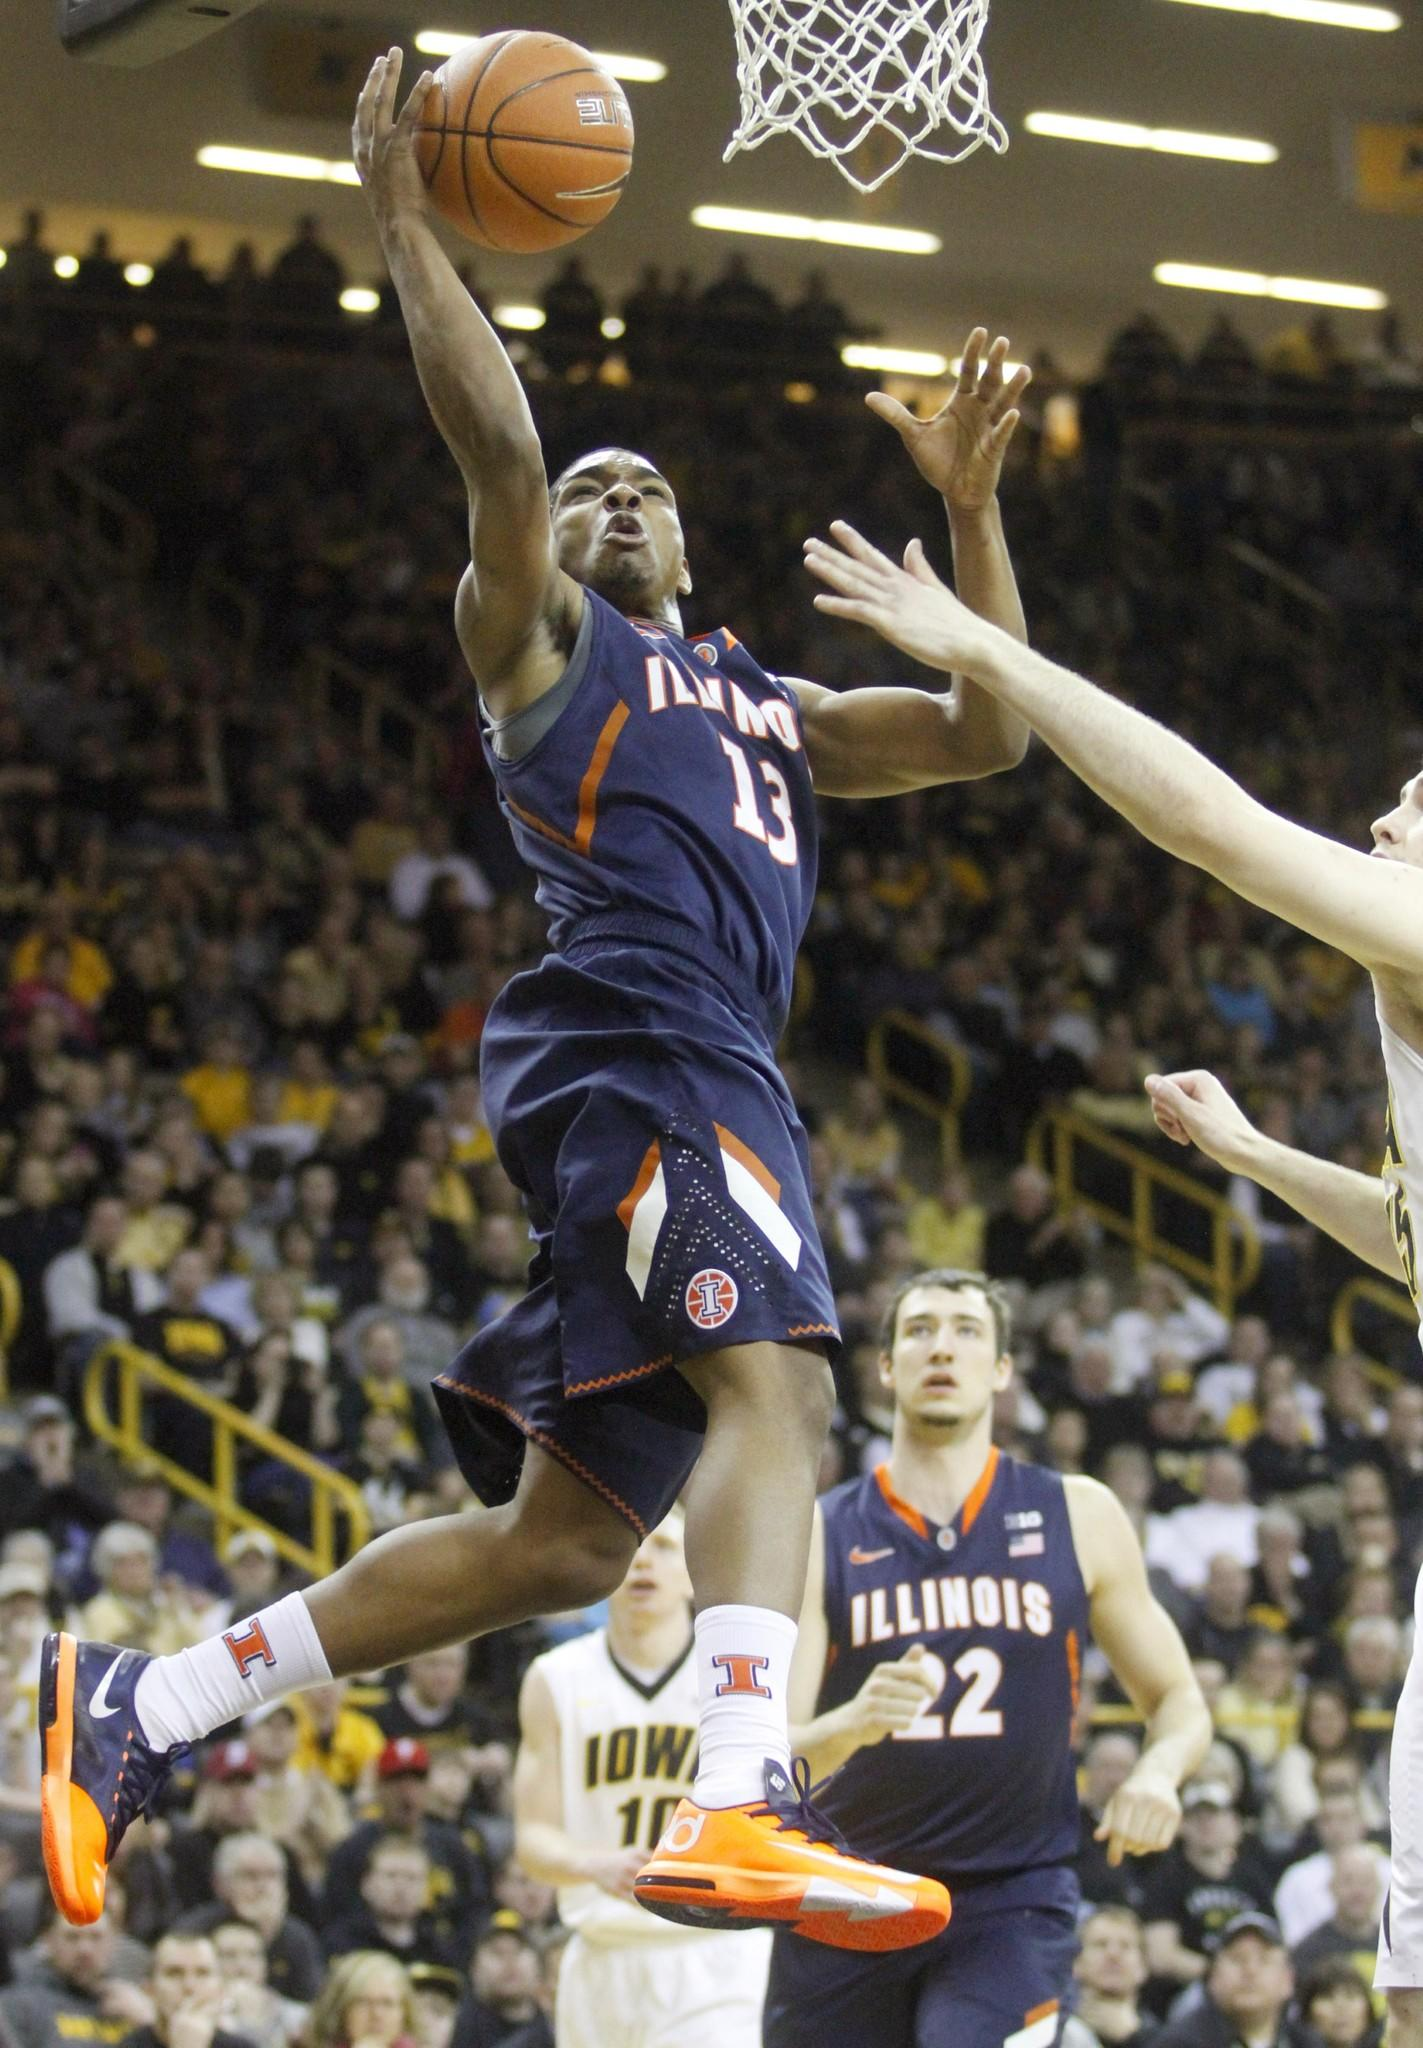 Guard Tracy Abrams (13) of the Illinois Fighting Illini goes to the basket during the first half against Iowa on March 8, 2014 at Carver-Hawkeye Arena, in Iowa City, Iowa.